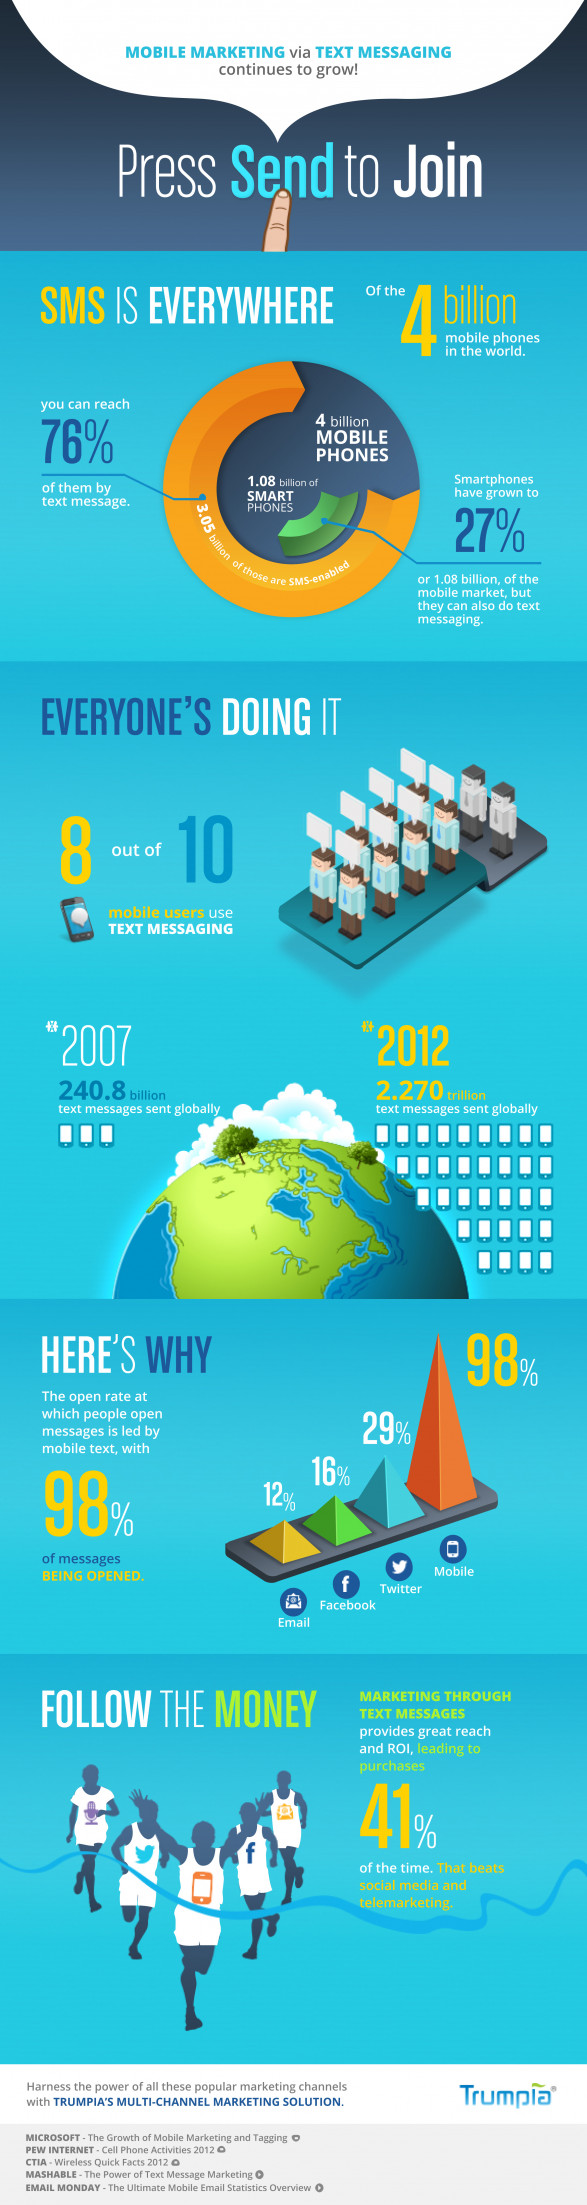 Mobile Marketing Via Text Messaging